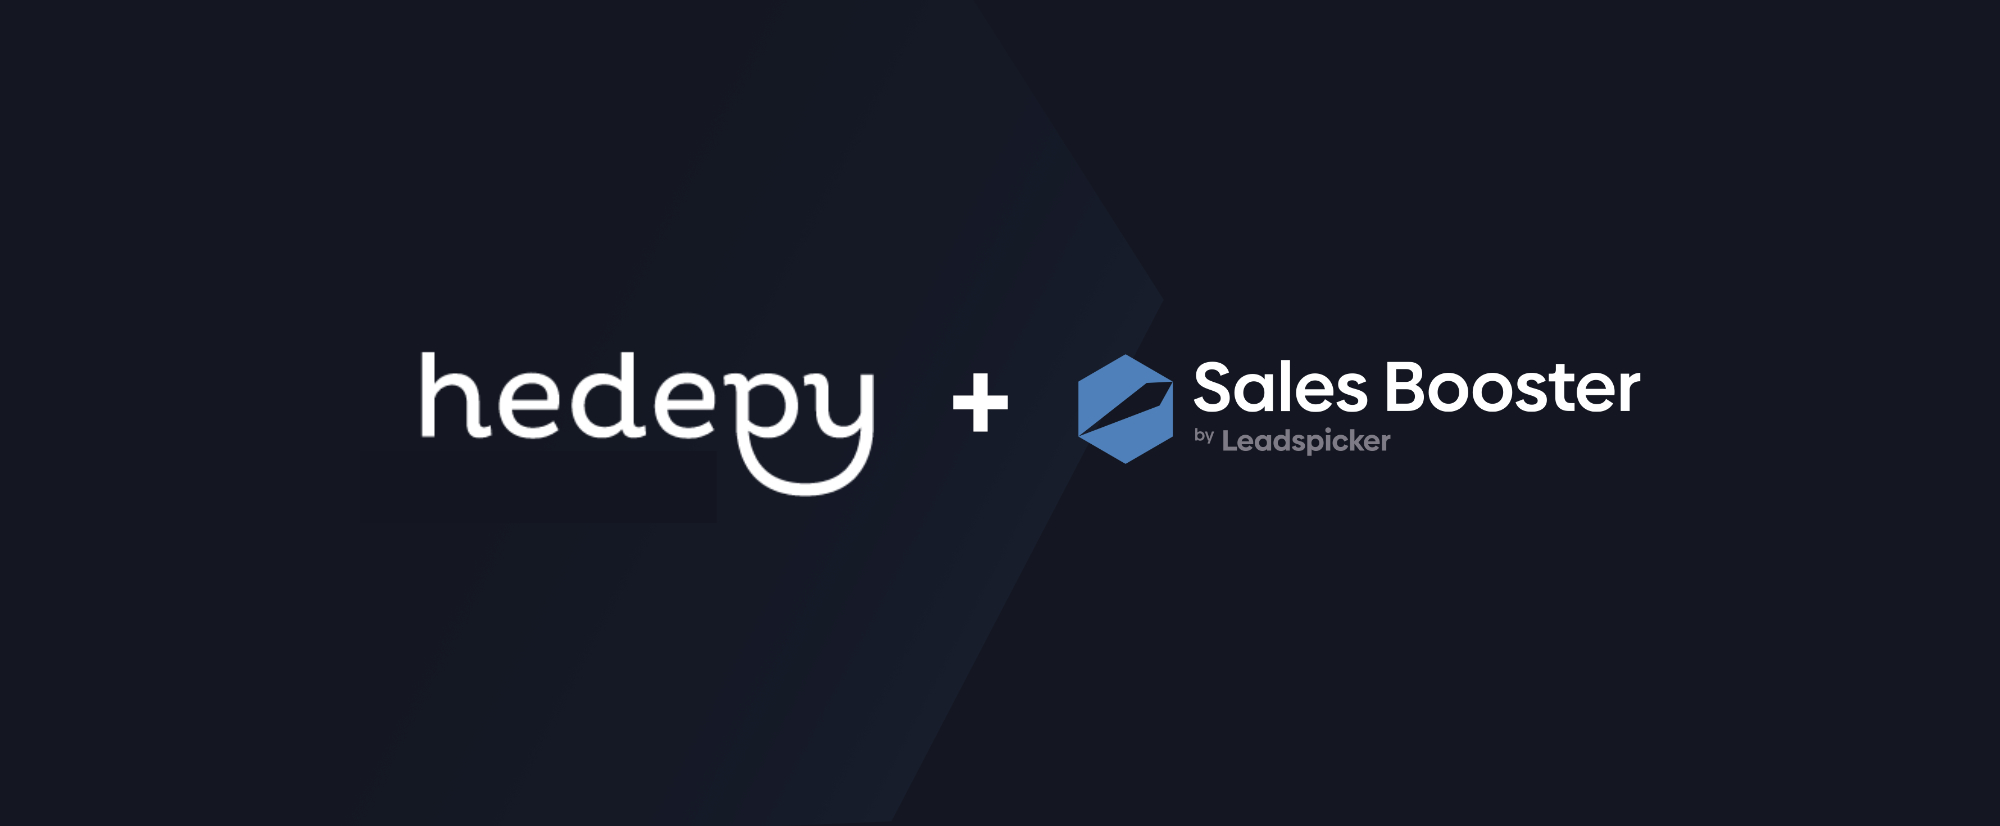 How Sales Booster Helped Hedepy Outsource Sales for Their Online Therapy Platform